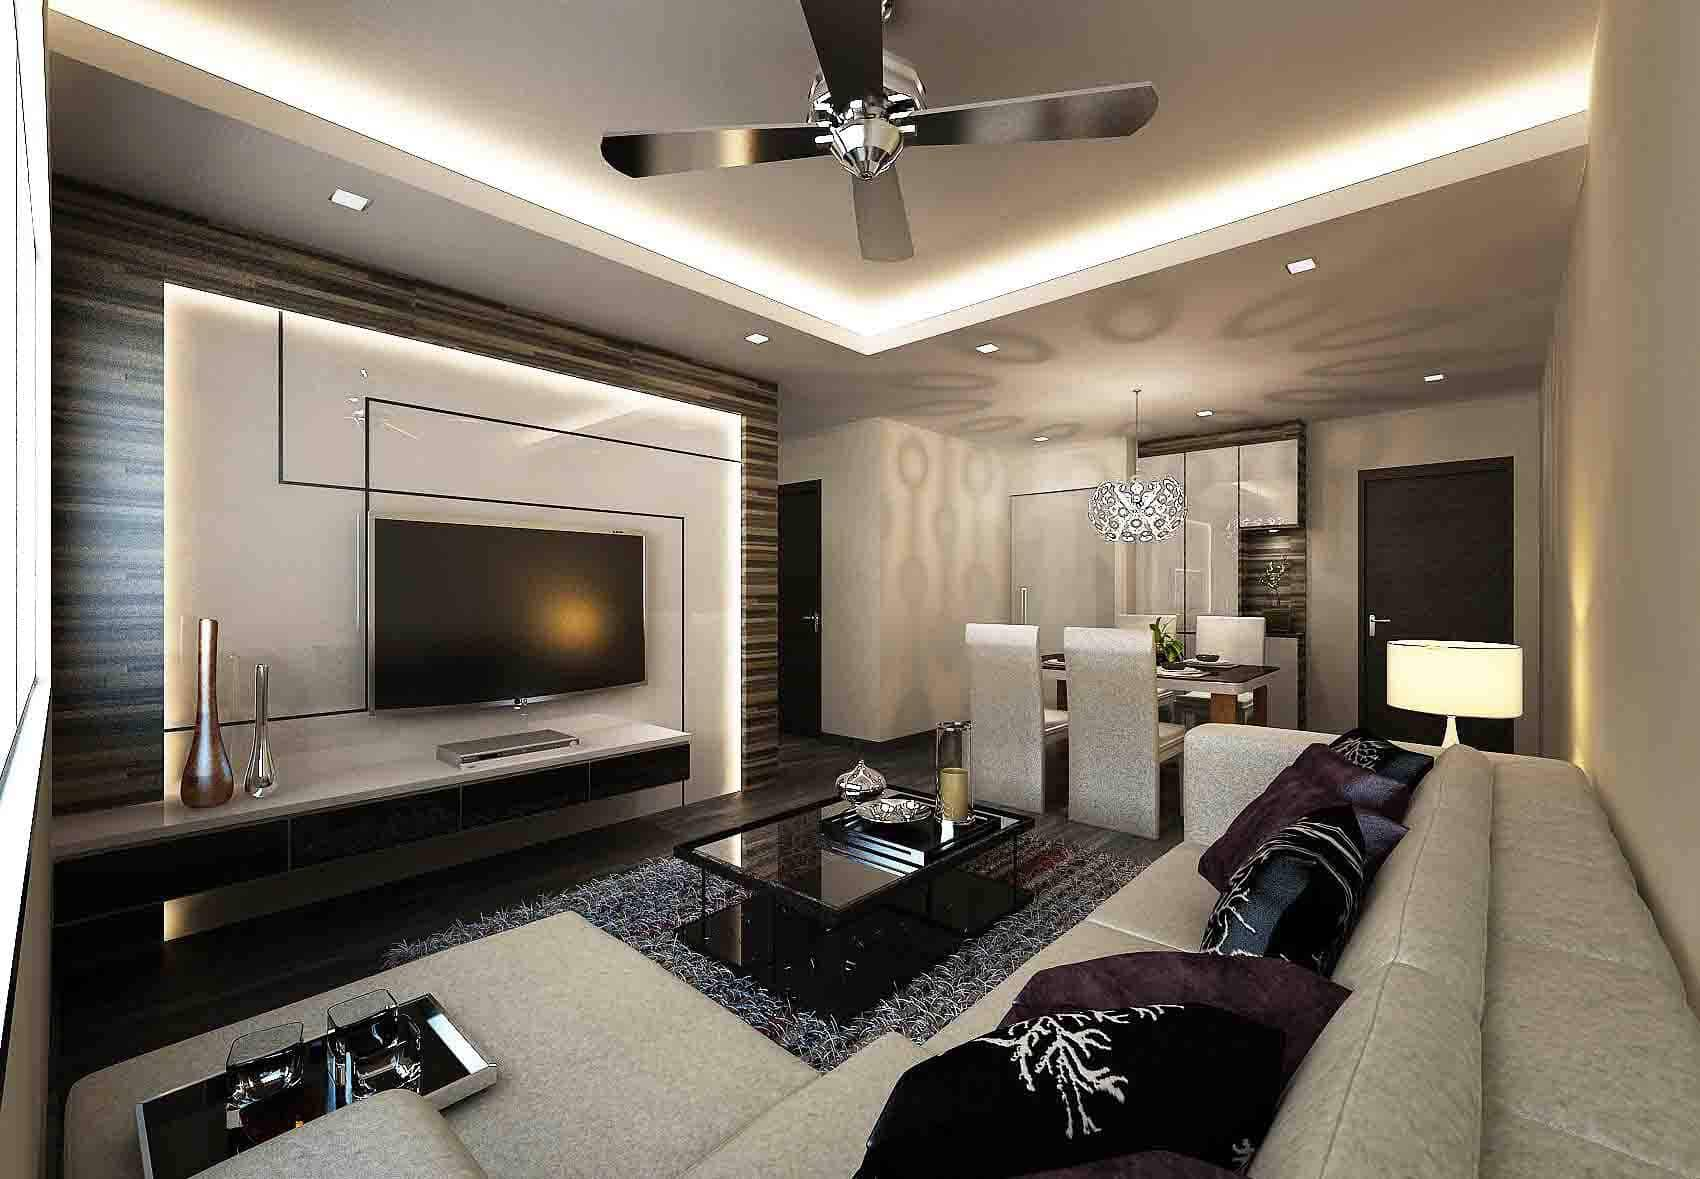 5 elements of a successful living room concept juz interior for Room interior images